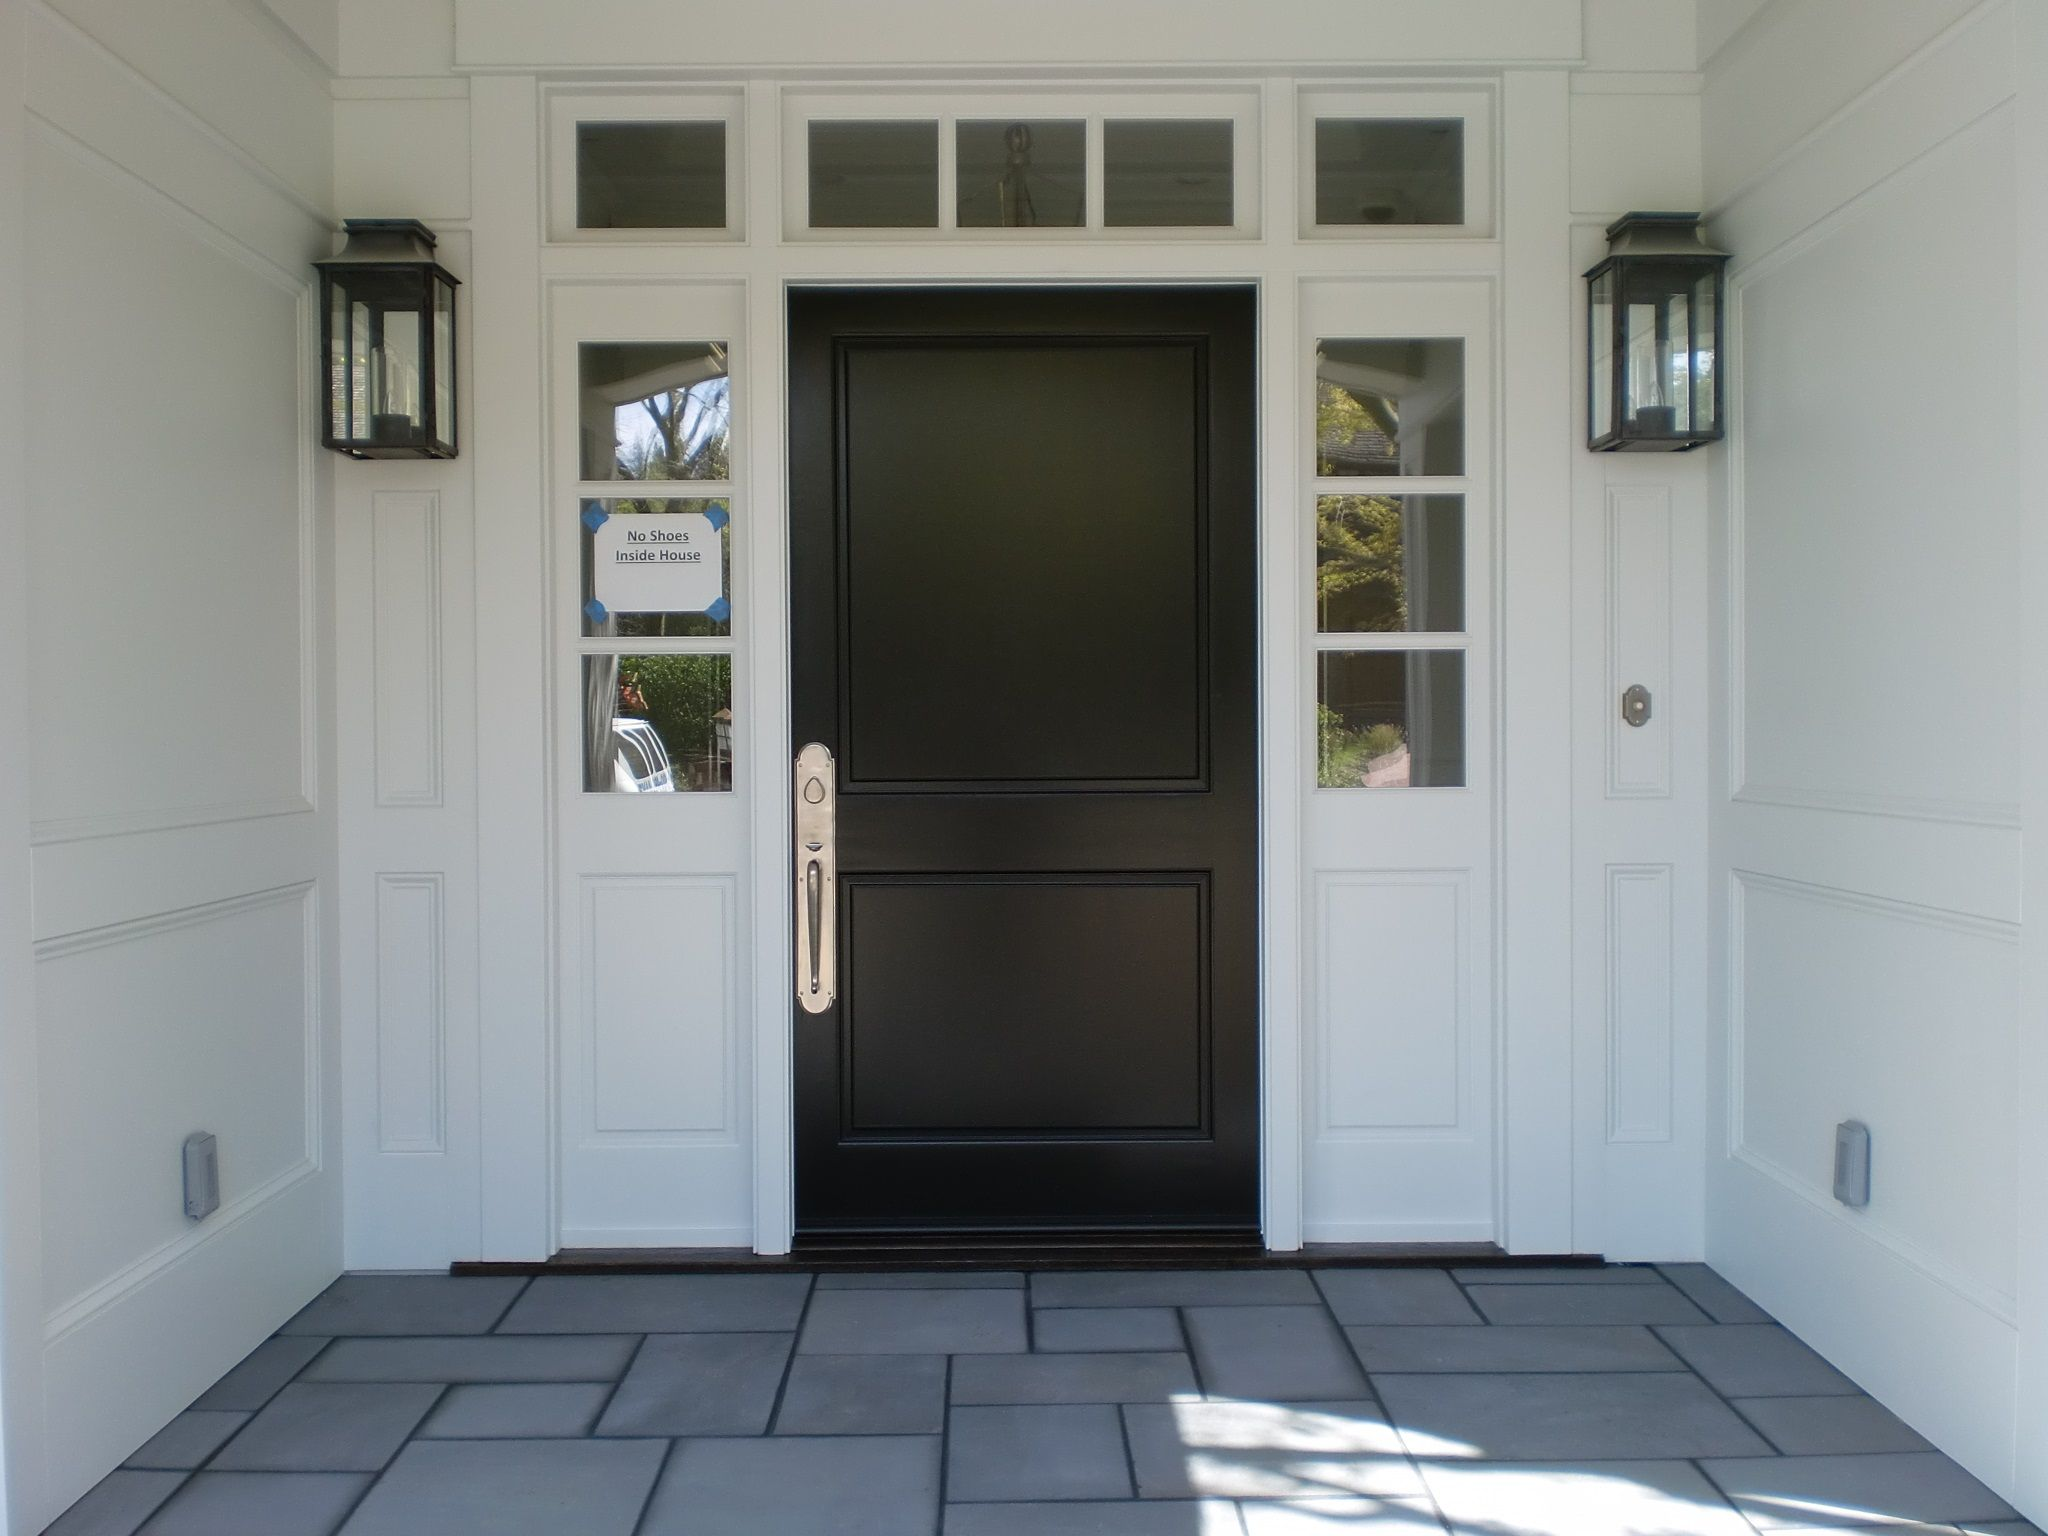 #AshleyNorton #White #Bronze Entry set, this makes a bold statement on a black door! #Decorate your #Door!!